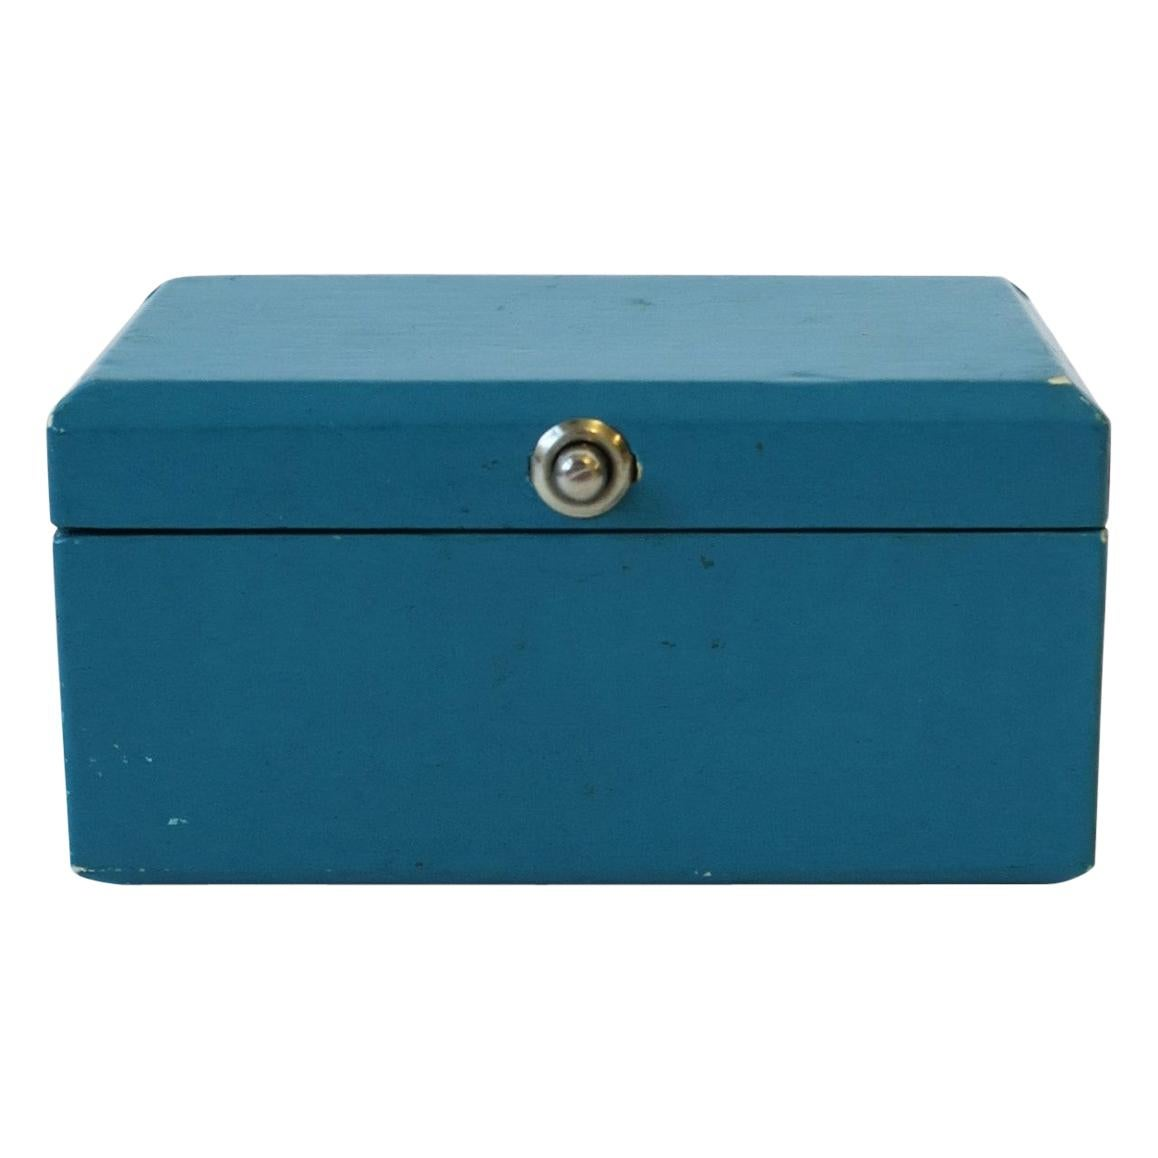 Danish Modern Georg Jensen Jewelry Box